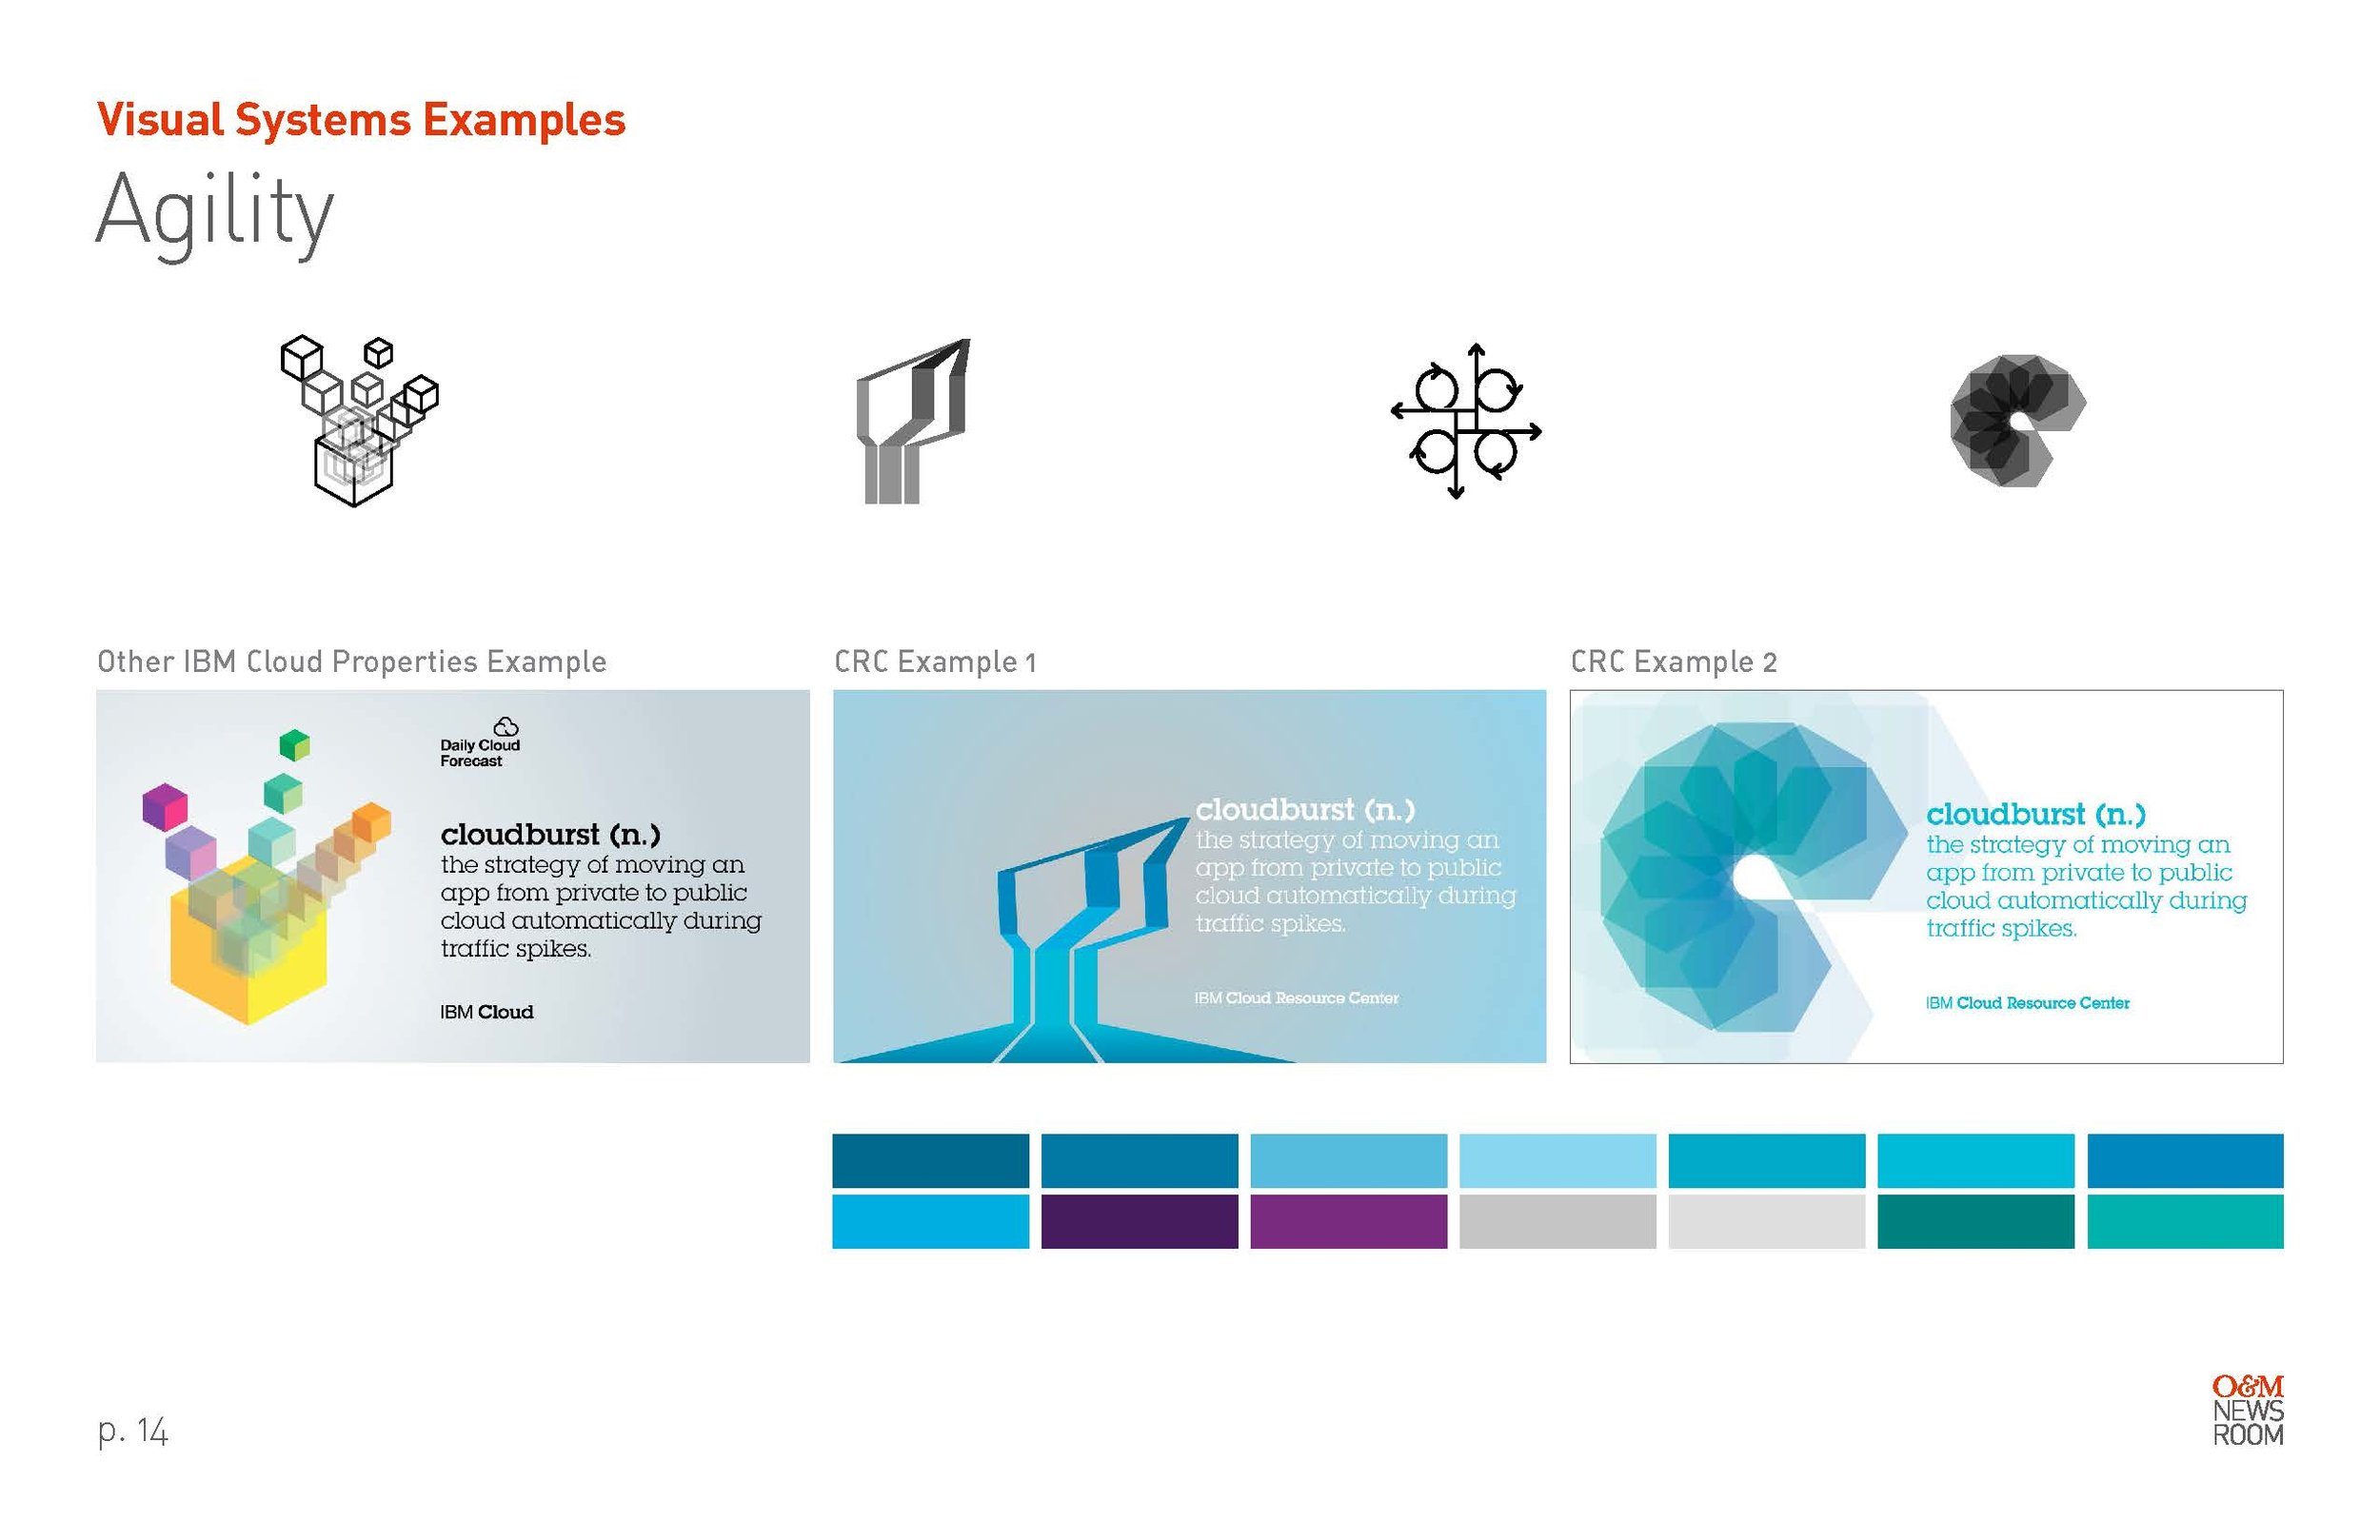 IBMNR_Cloud_Always_On_Social_Visual_Systems_Tone_of_Voice_042815_Page_14.jpg